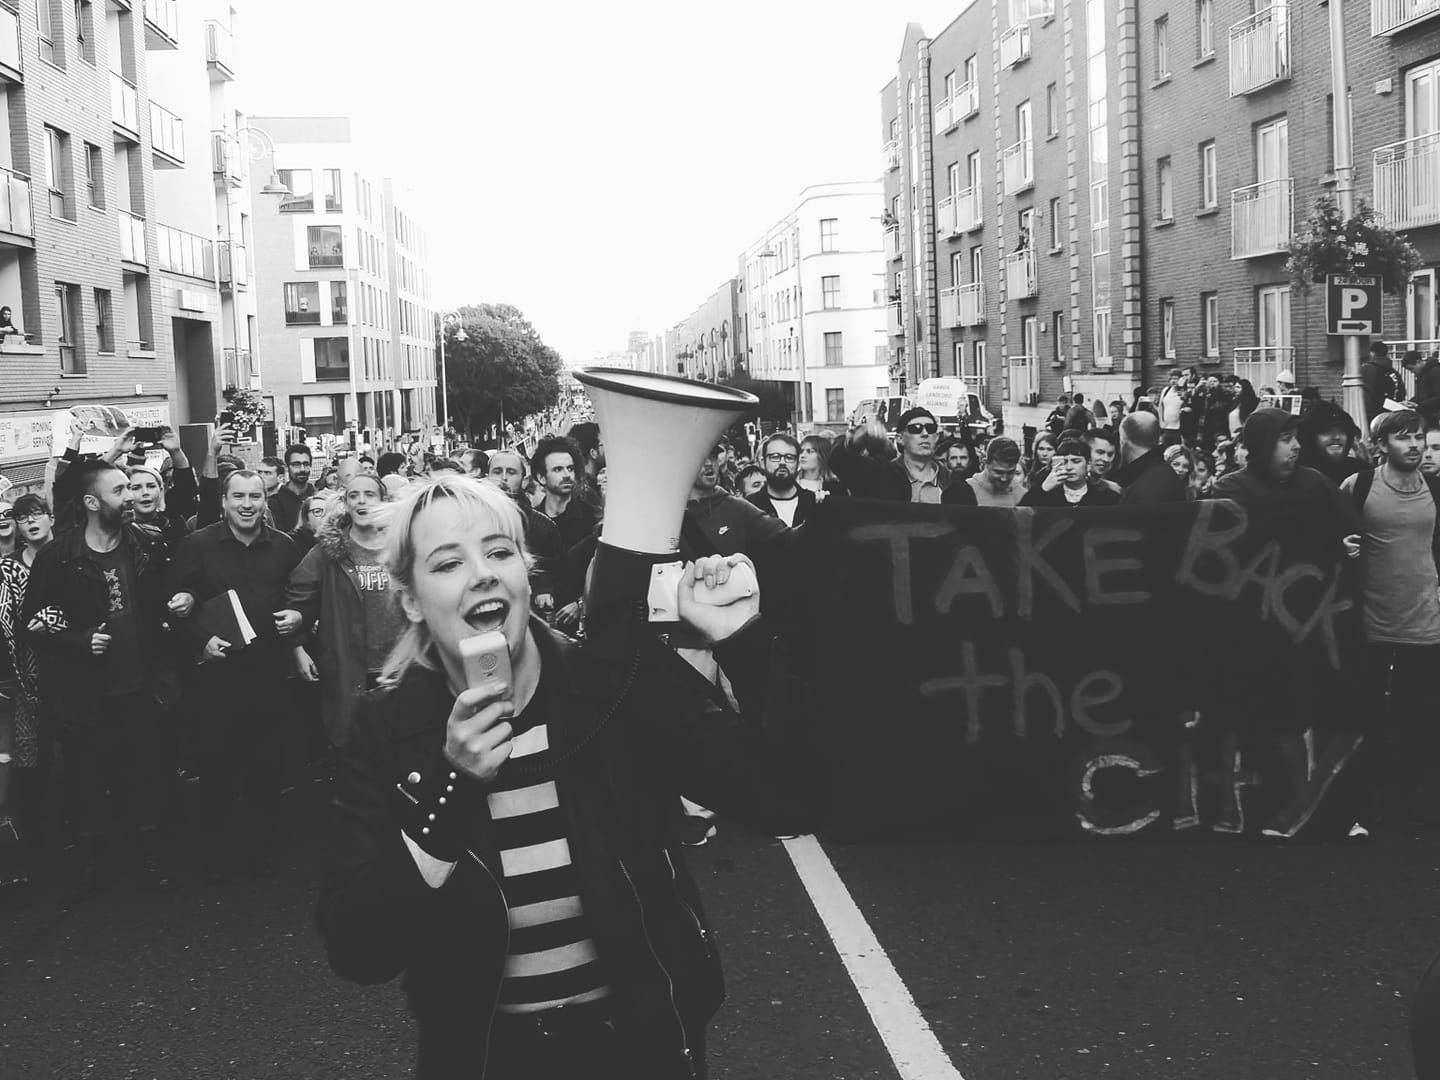 Protesters of the Take Back the City Dublin movement are walking down the street. A girl is holding a megaphone. The activists militate for a right to housing.